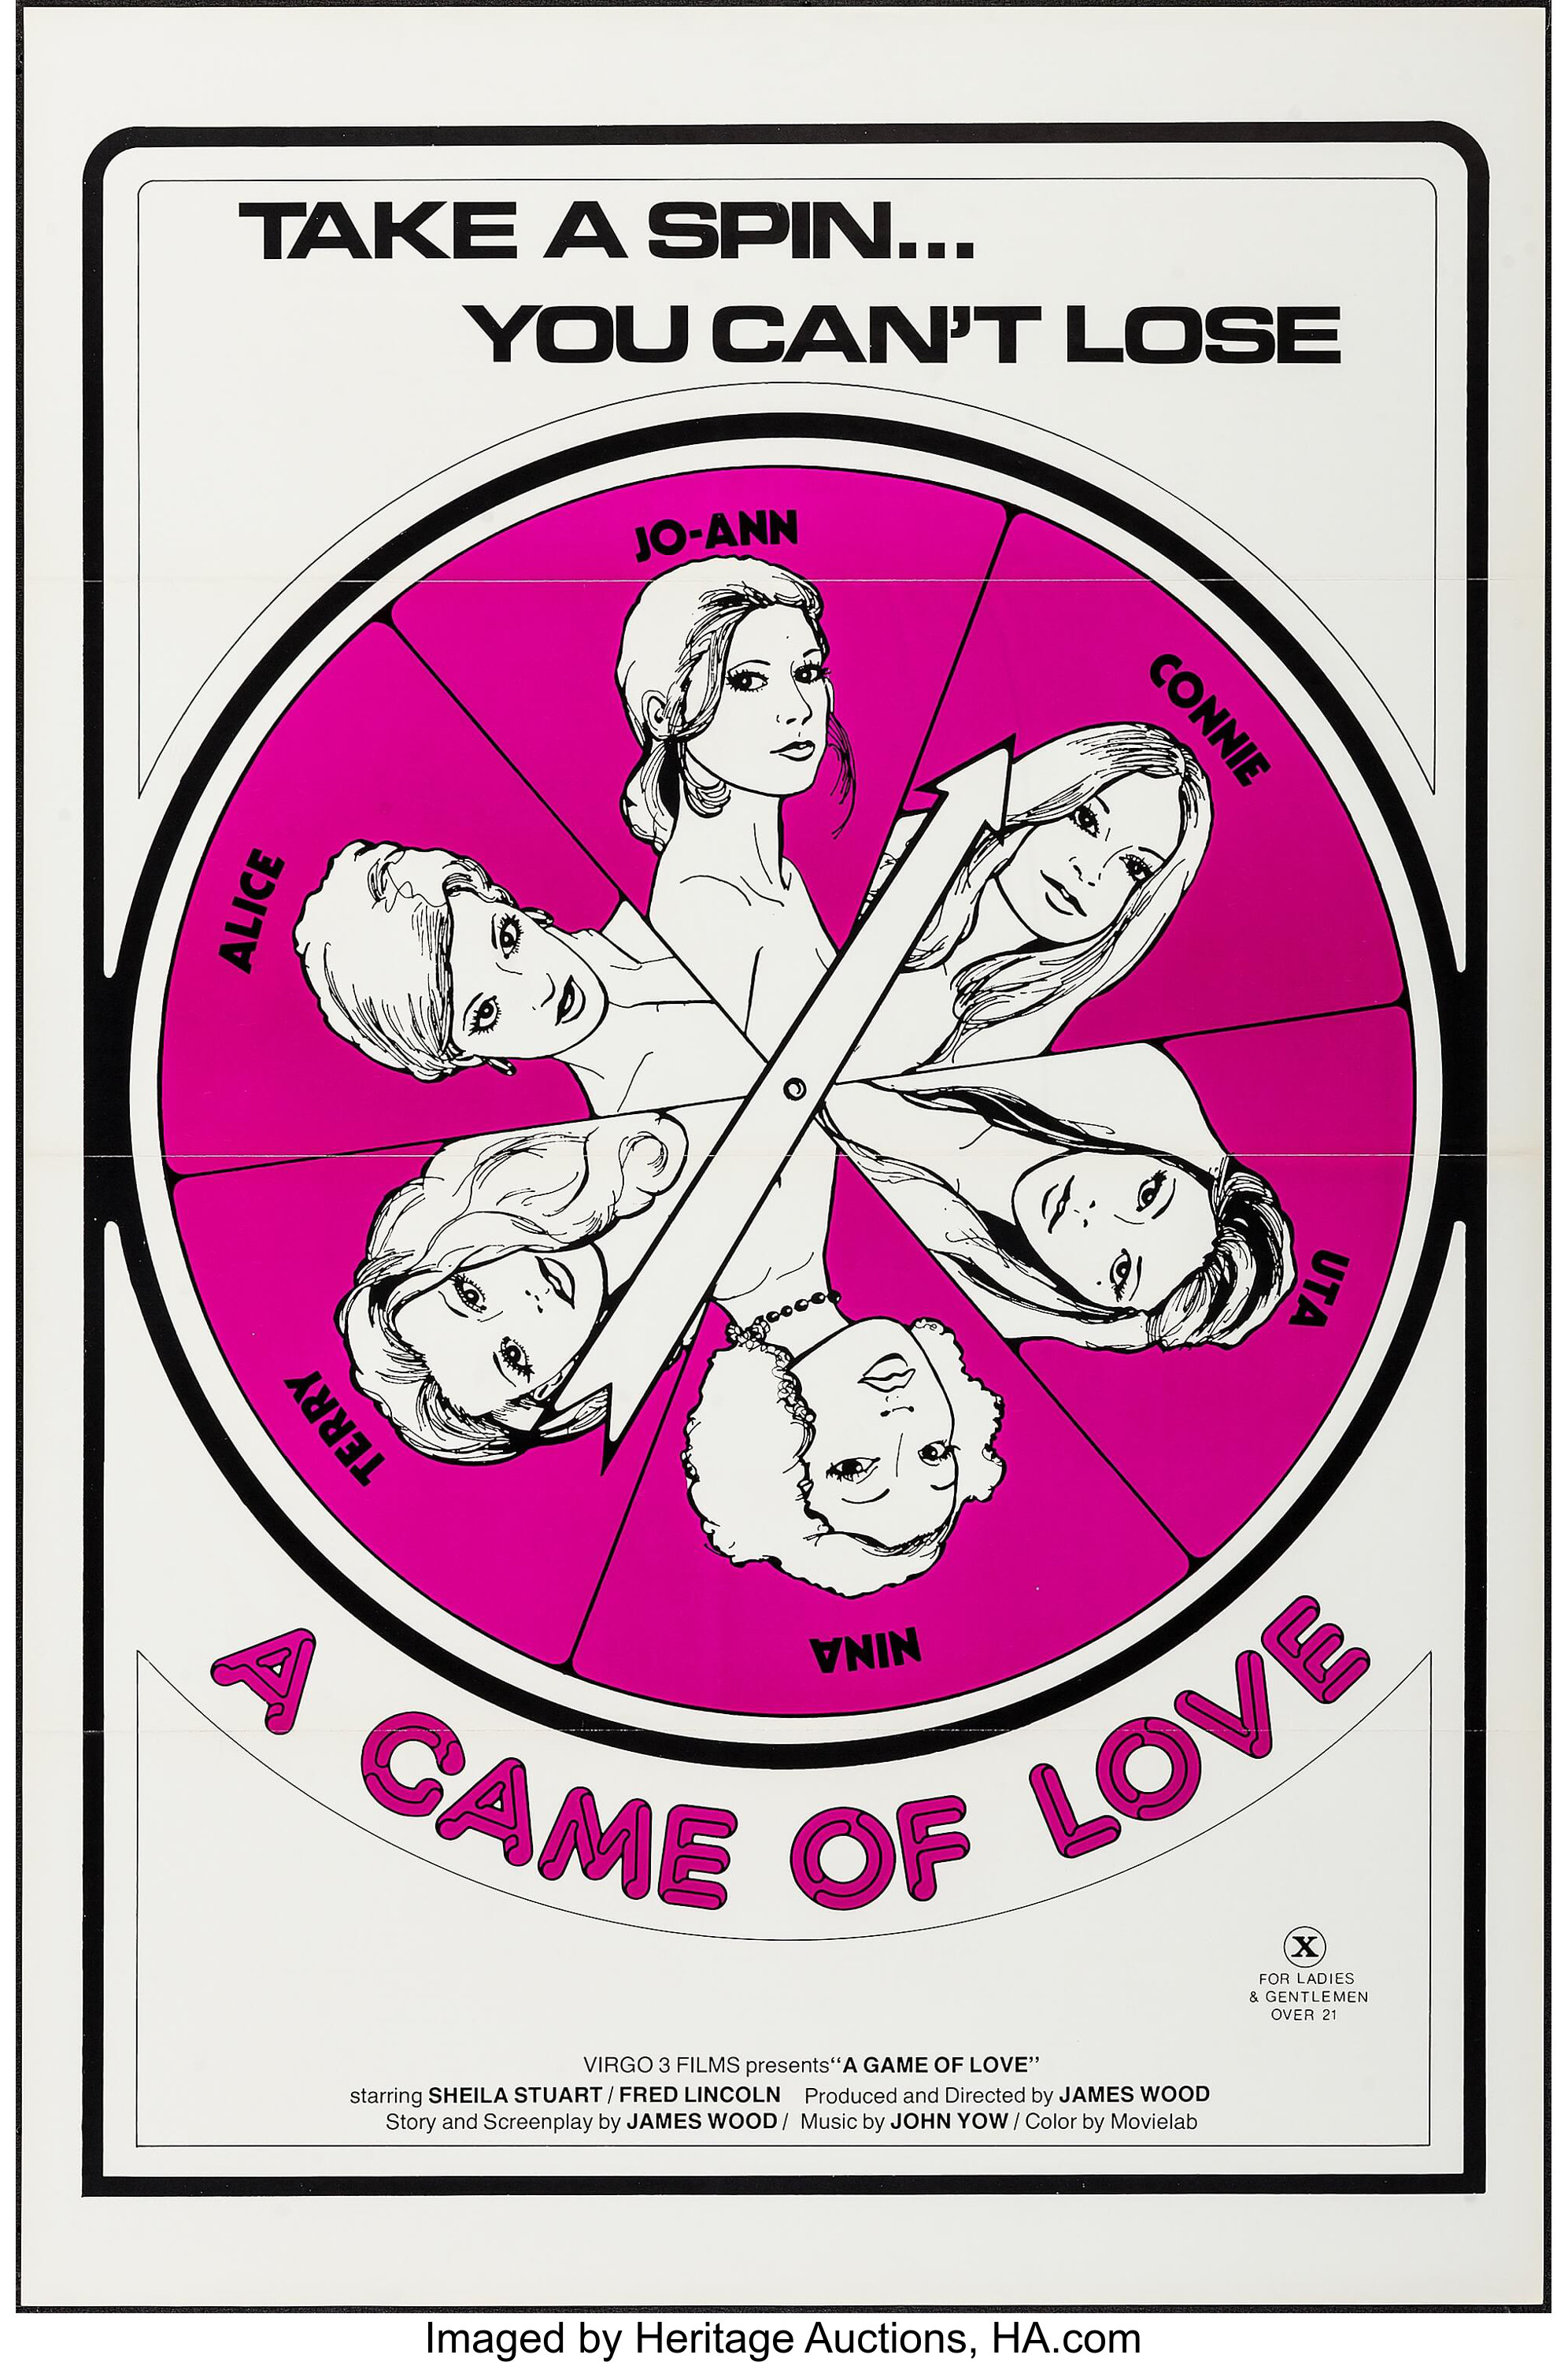 Game Of Love Sheets a game of love & others lot (virgo 3 films, 1974). one